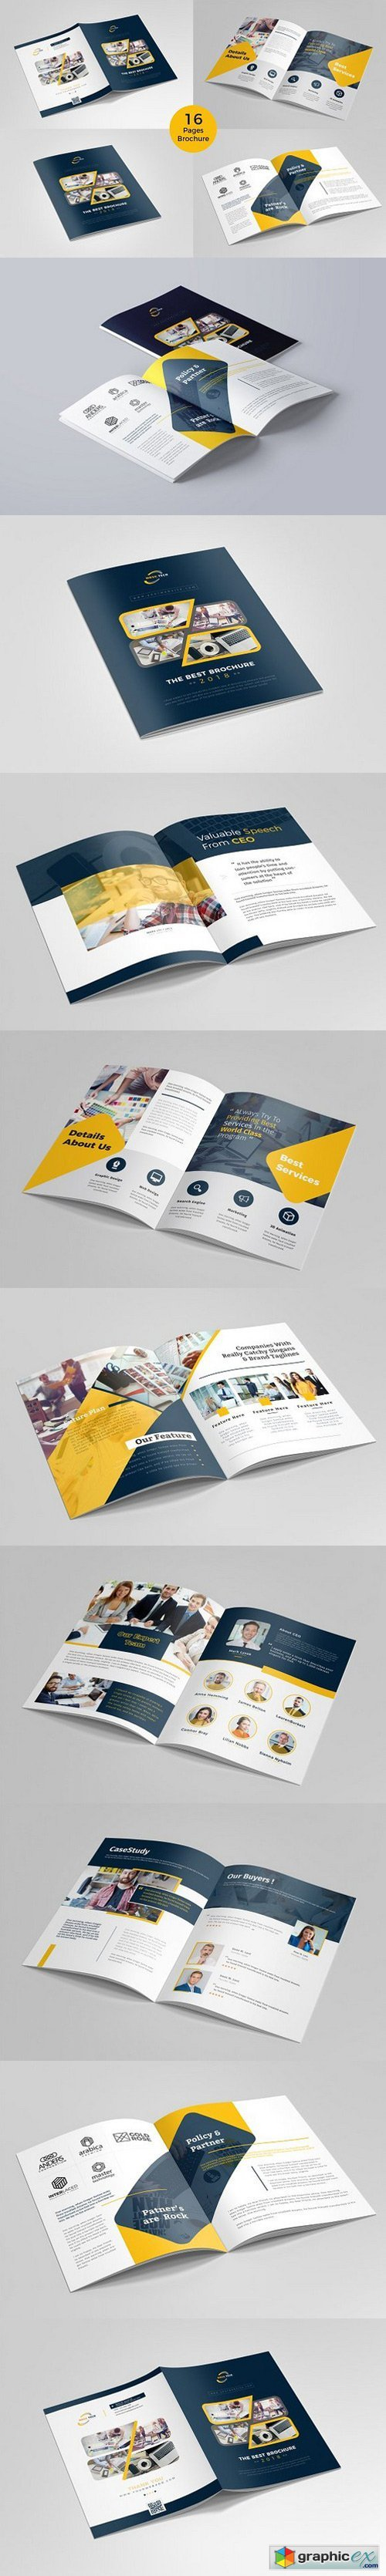 Brochure Template - 16 pages